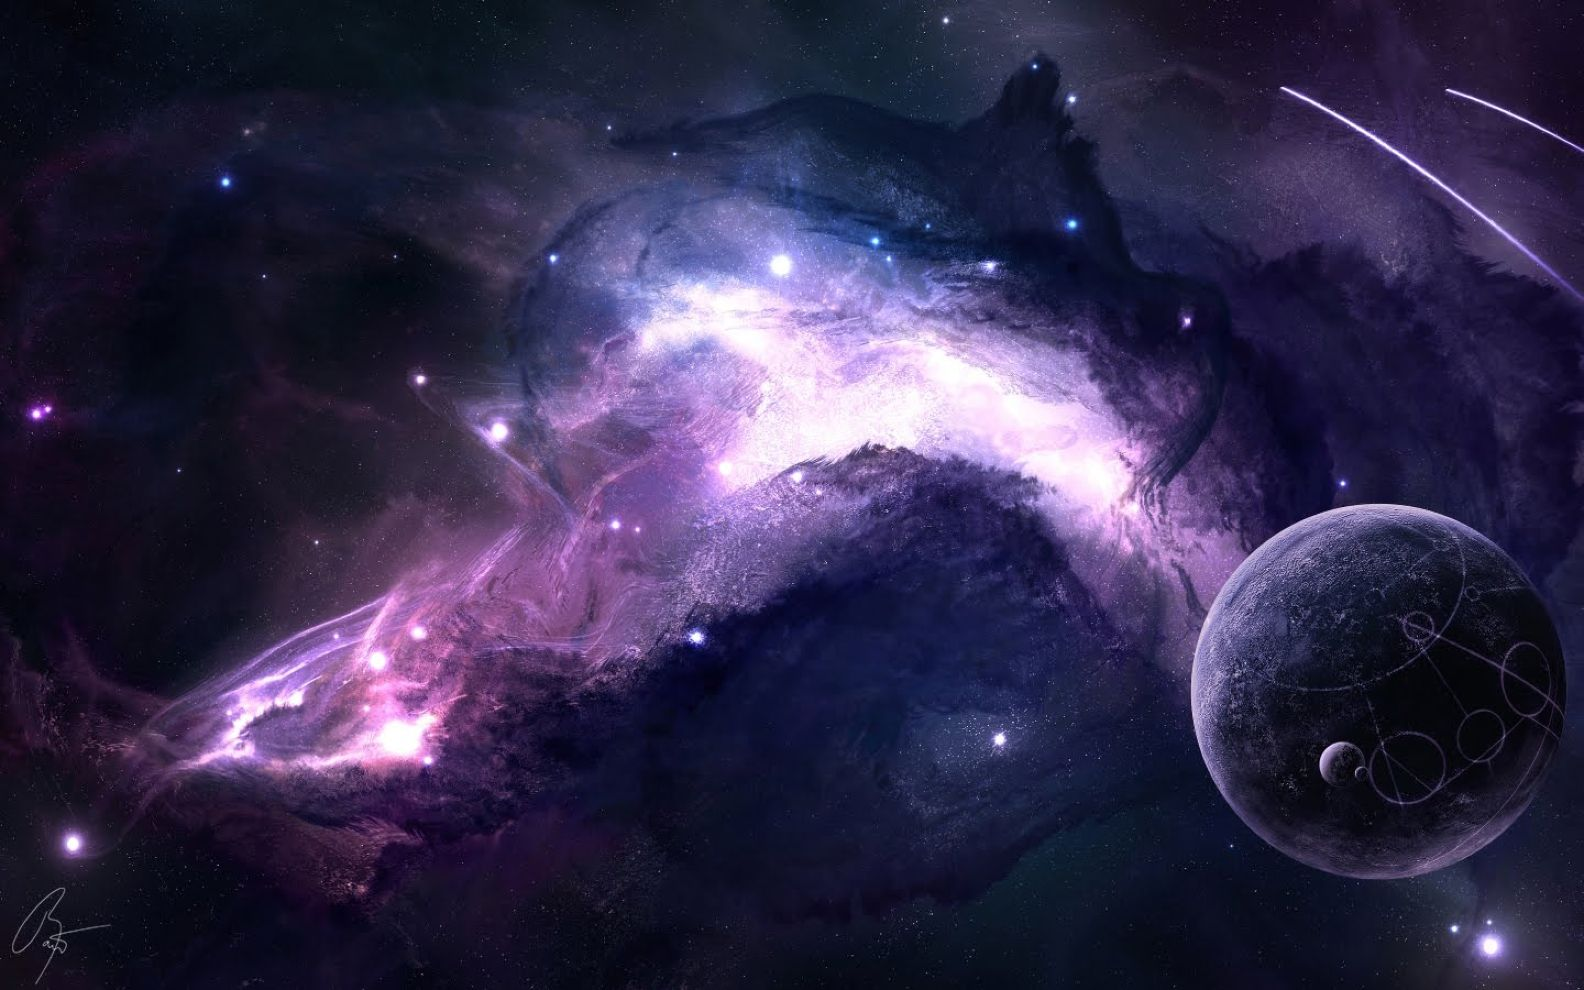 Abstract Cool 3D Space Hd Wallpaper: Desktop HD Wallpaper ...